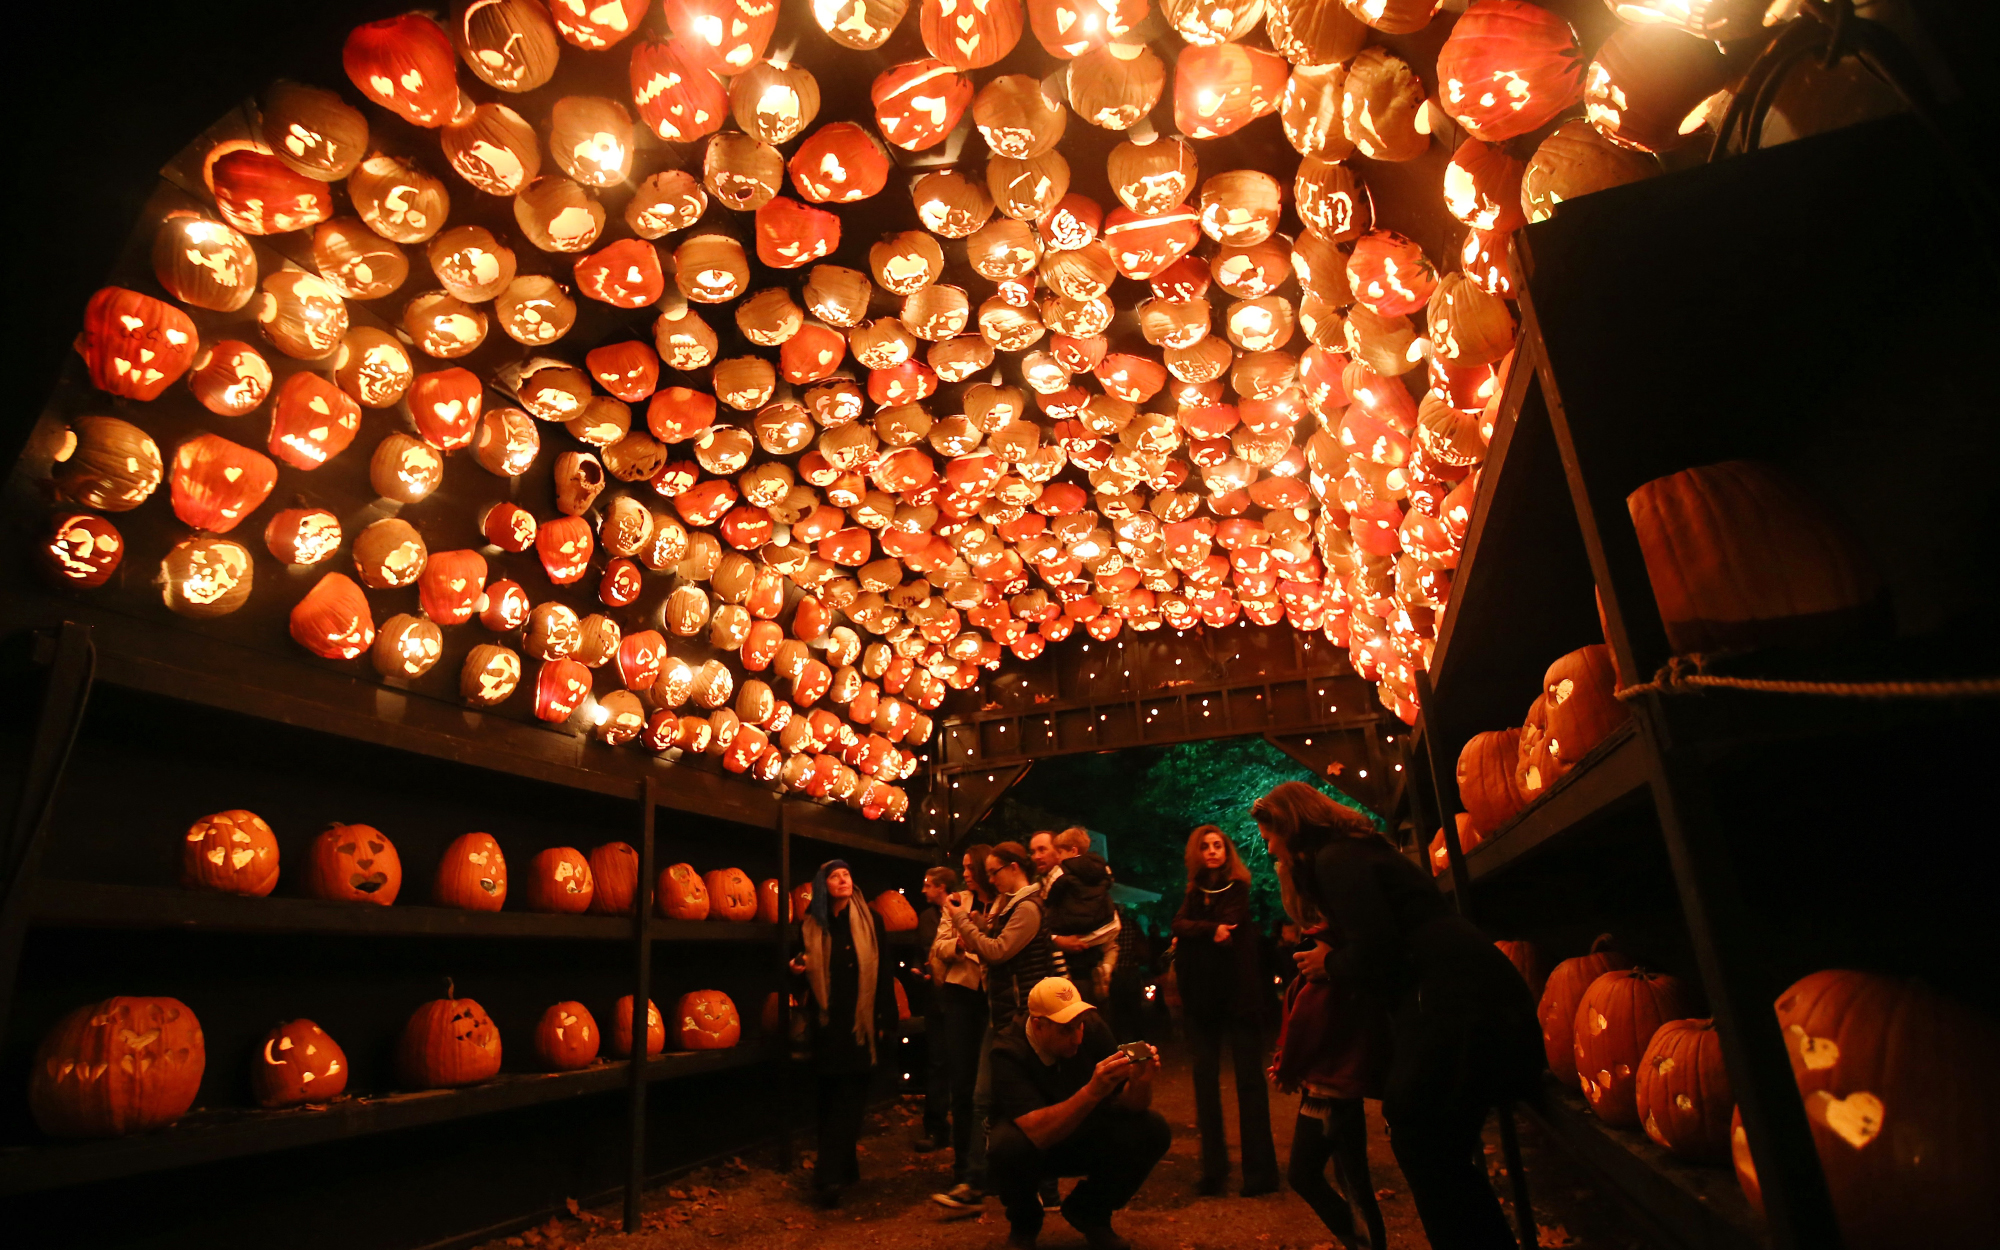 The Great Jack O'Lantern Blaze in Croton-on-Hudson,  New York